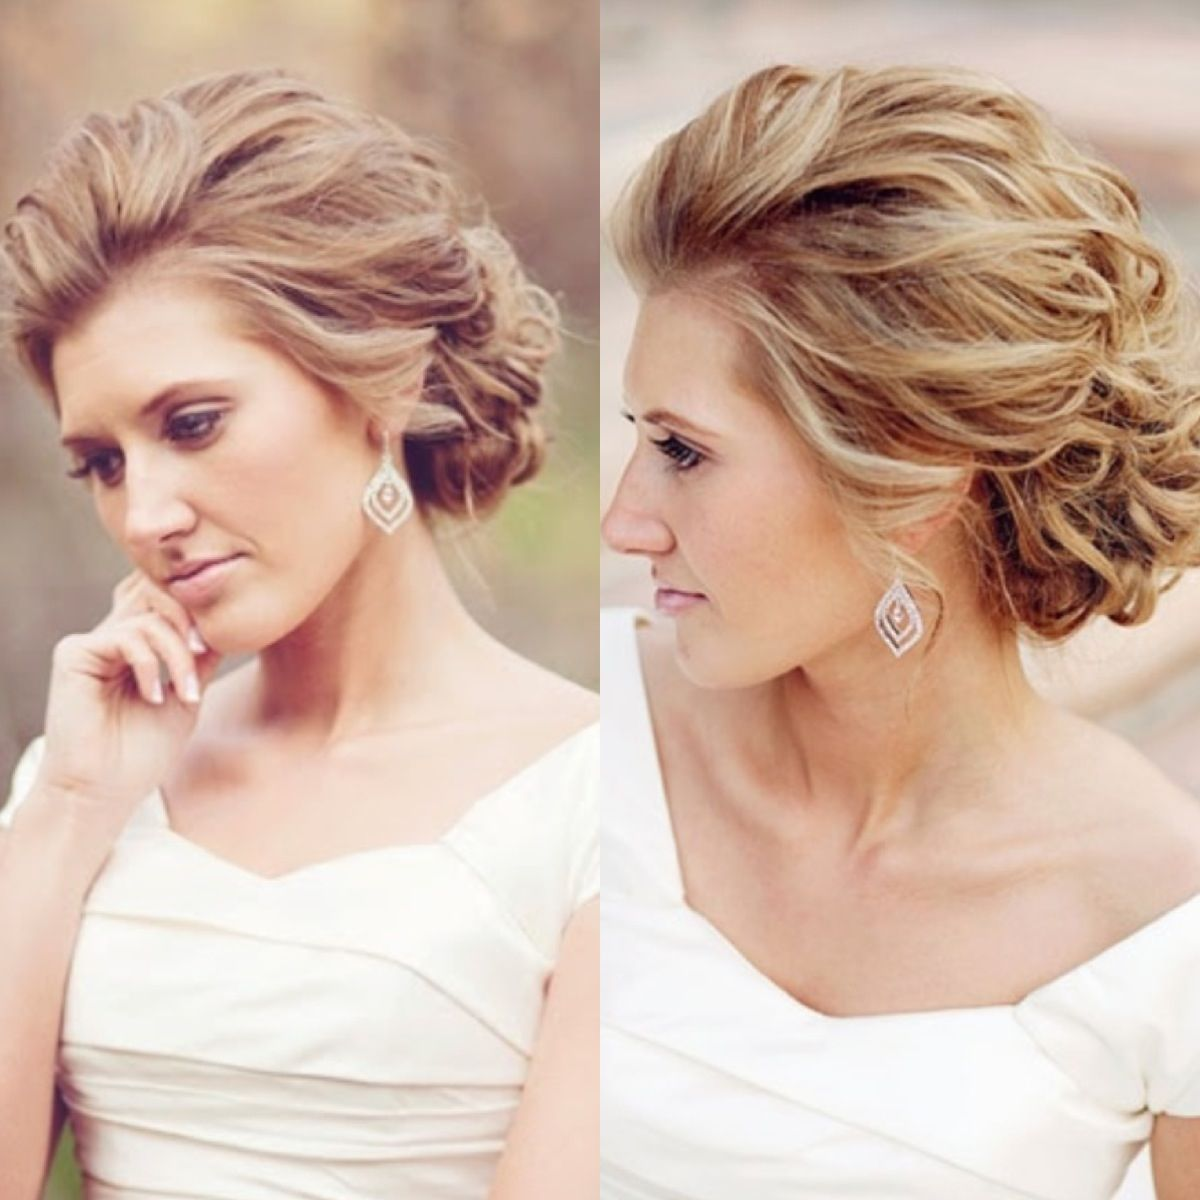 Wedding Hair Loose Up Style: Soft Updo - Beautiful! Grad Inspiration